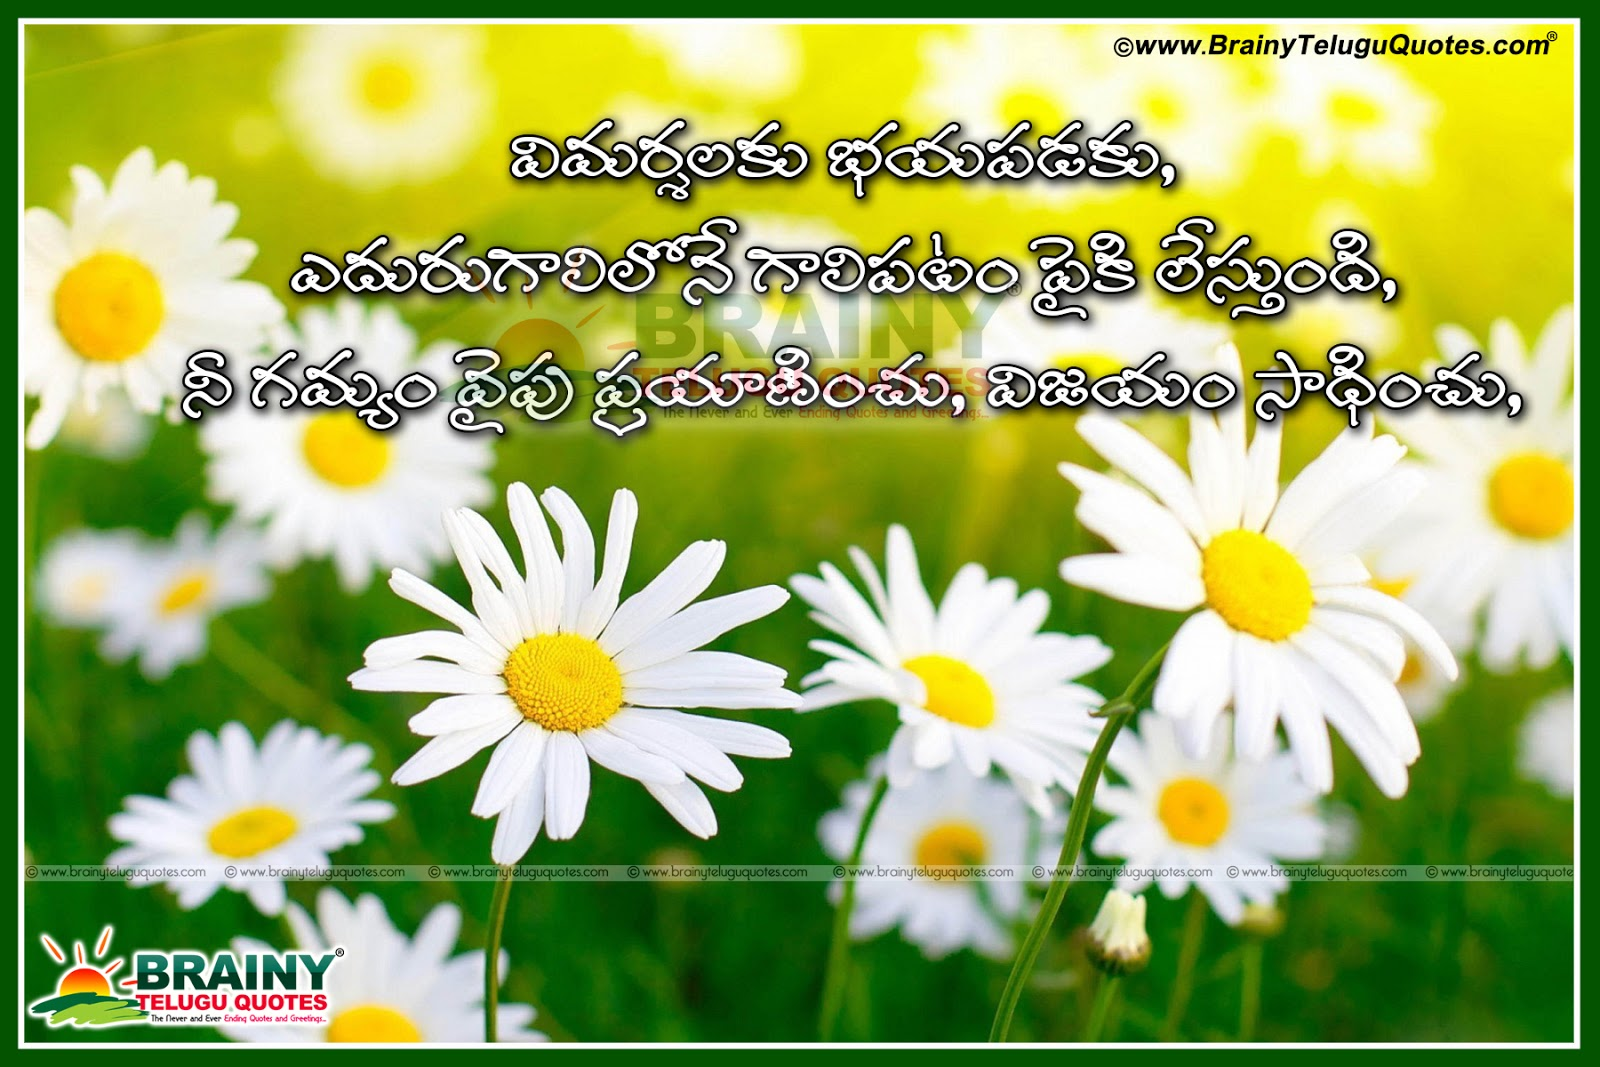 Here Is A Telugu Perseverance Quotes And Sayings Images, - Goal Settings Quotes In Telugu - HD Wallpaper